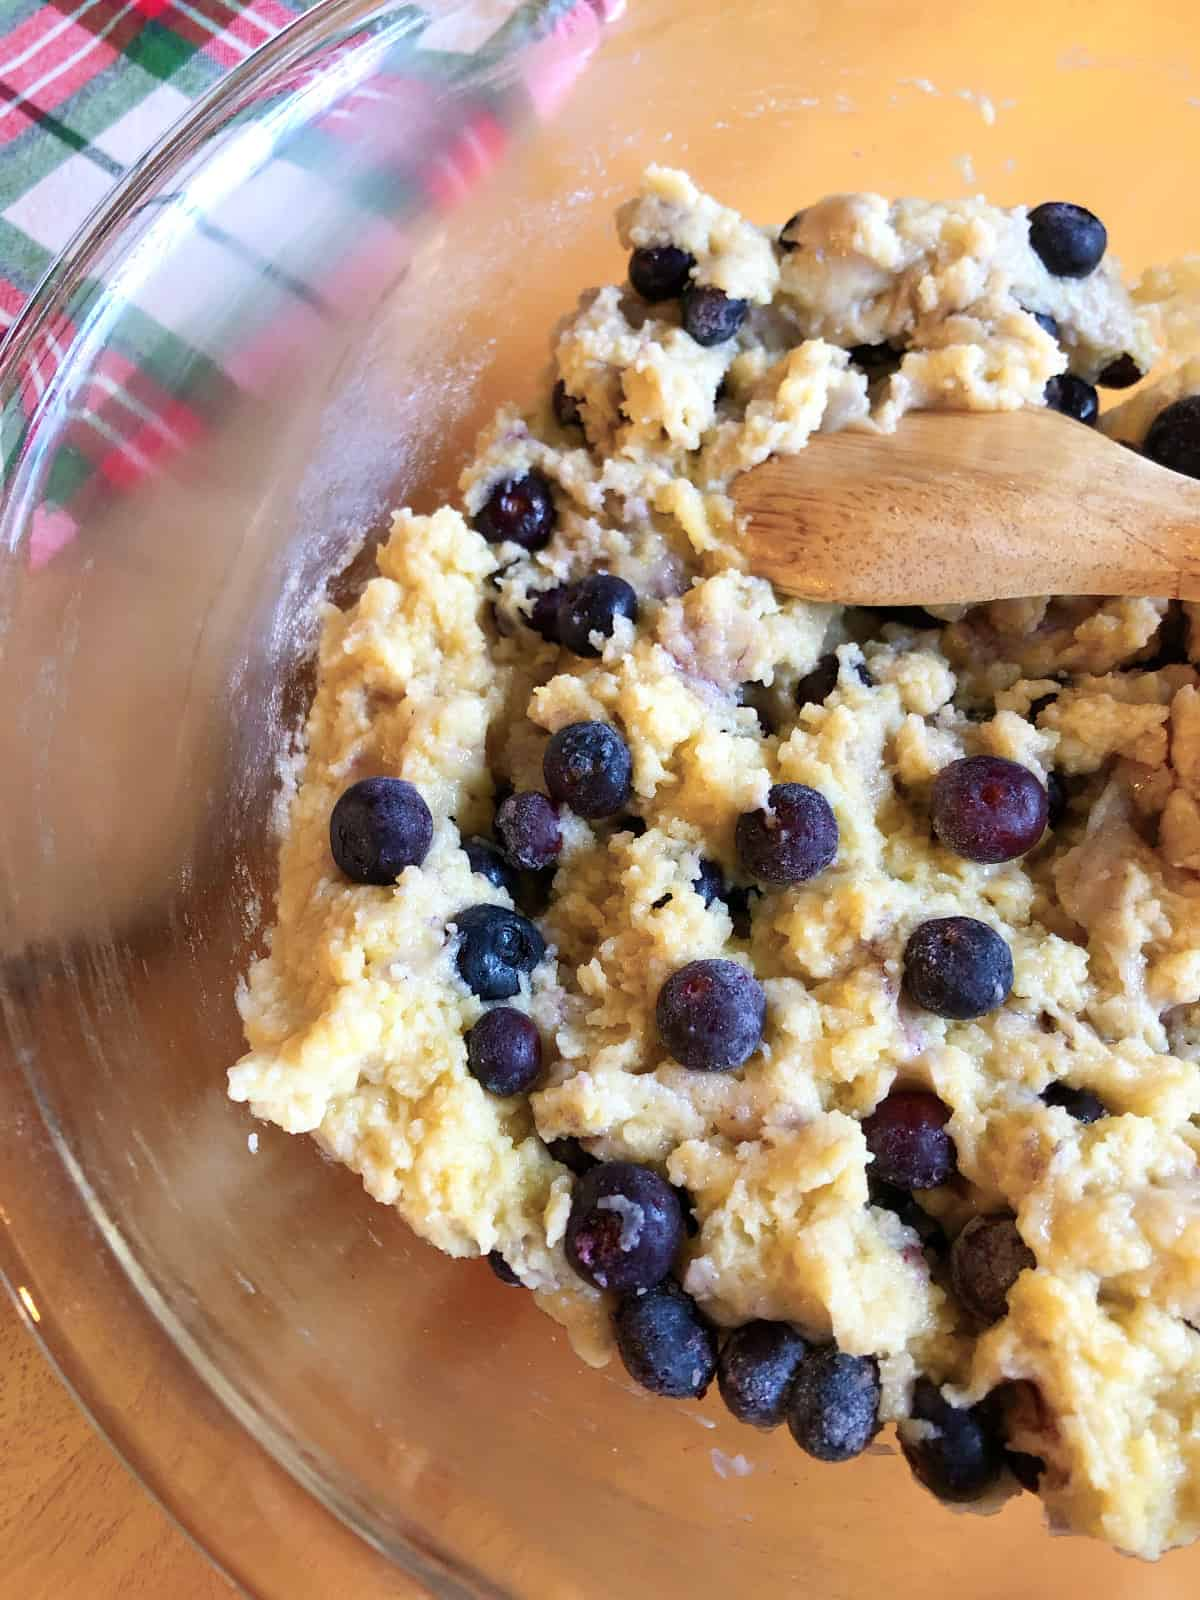 a thick blueberry streusel muffin batter with loads of blueberries, Christmas napkin in the background